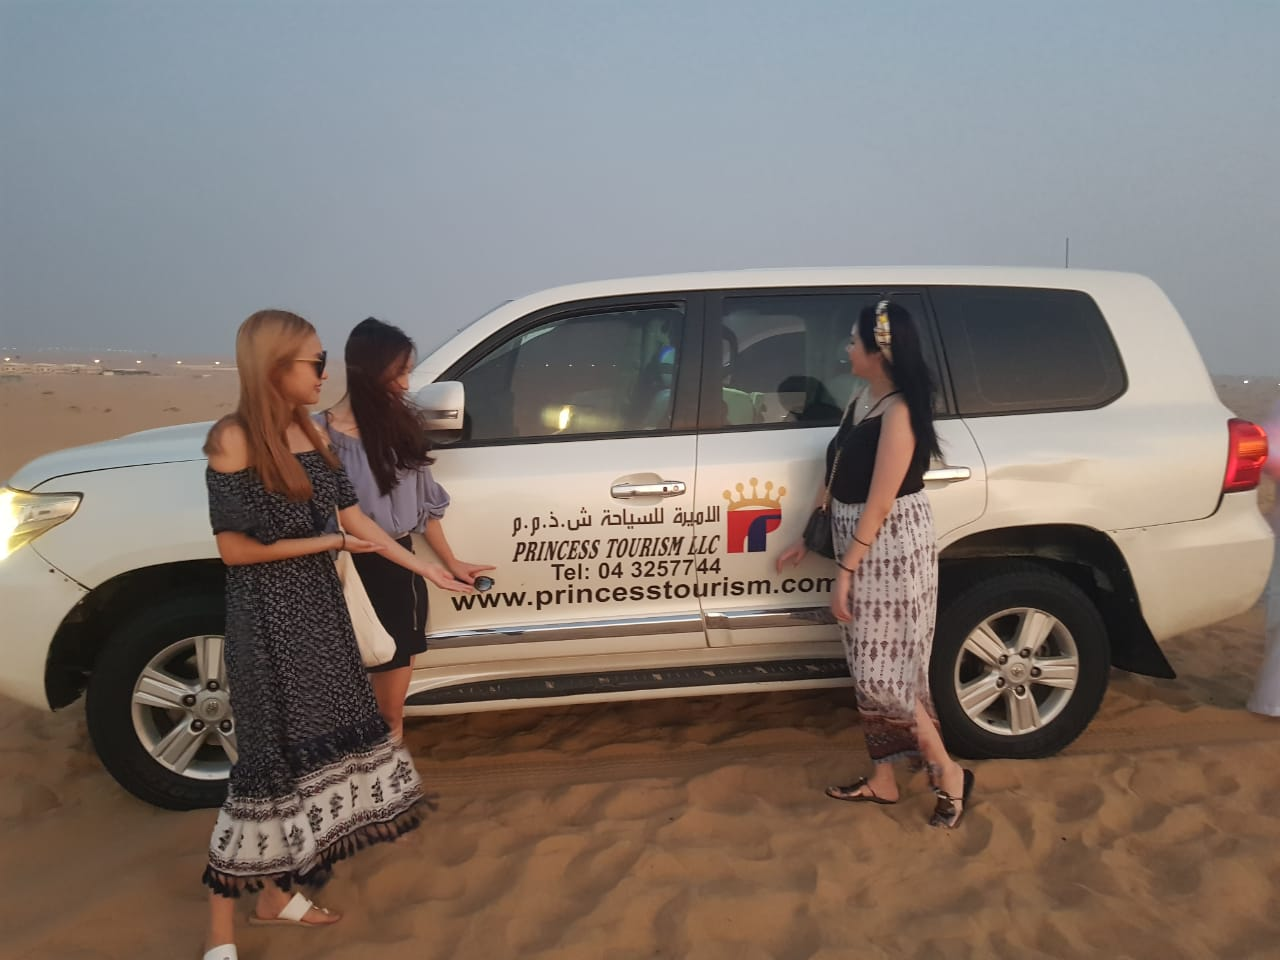 DESERT SAFARI-A BEAUTIFUL PLACE OF MAKING MEMORIES IN DUBAI